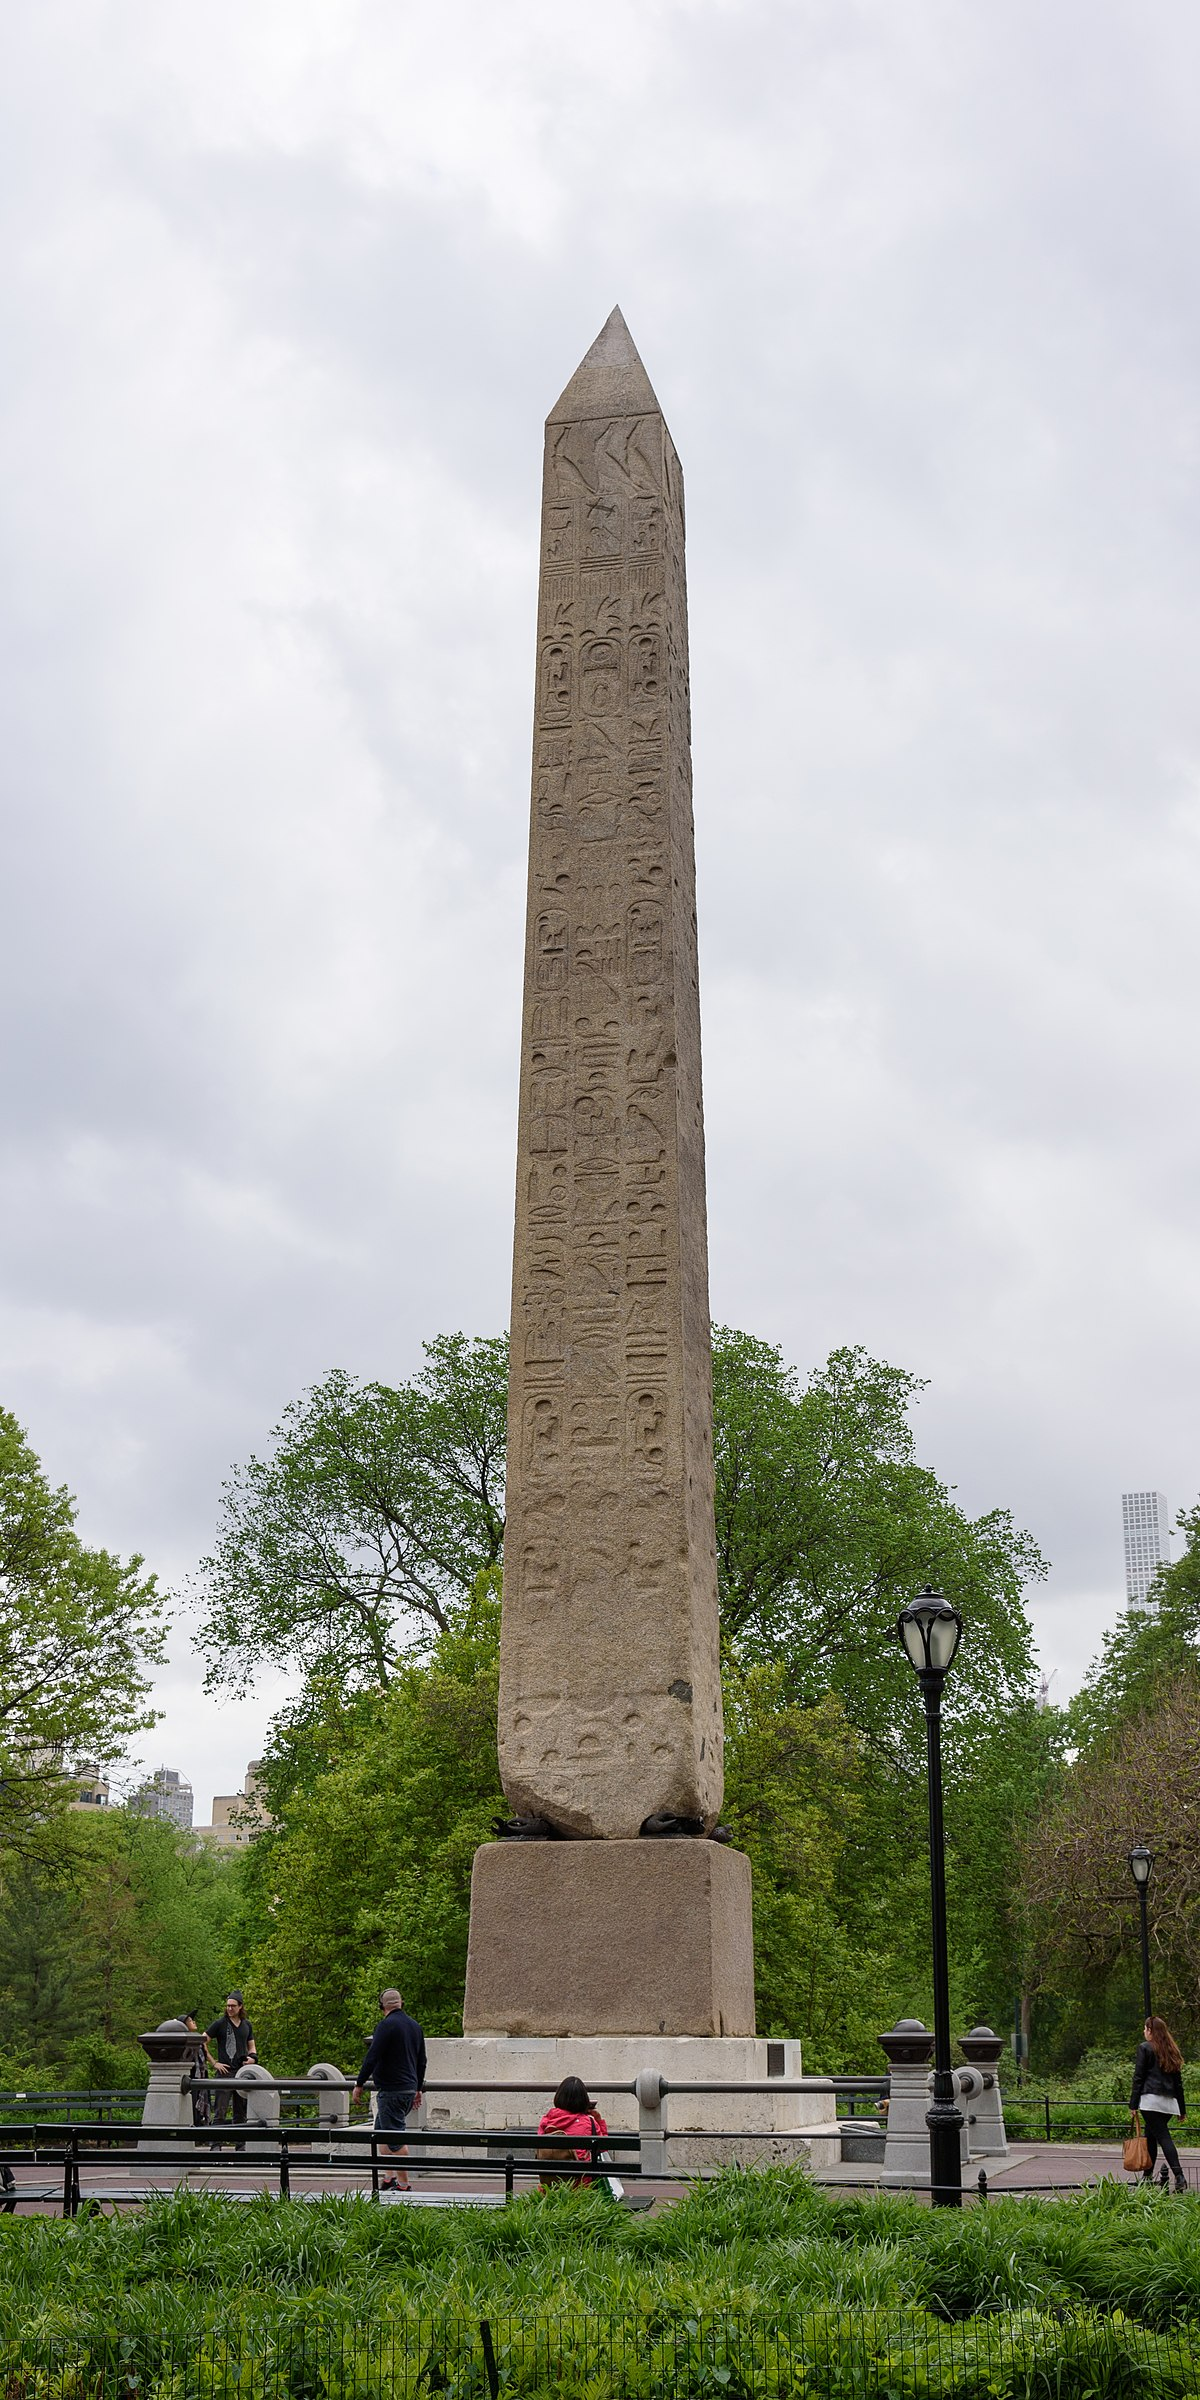 New York Sfondi 3d 58 Immagini: Cleopatra's Needle (New York City)